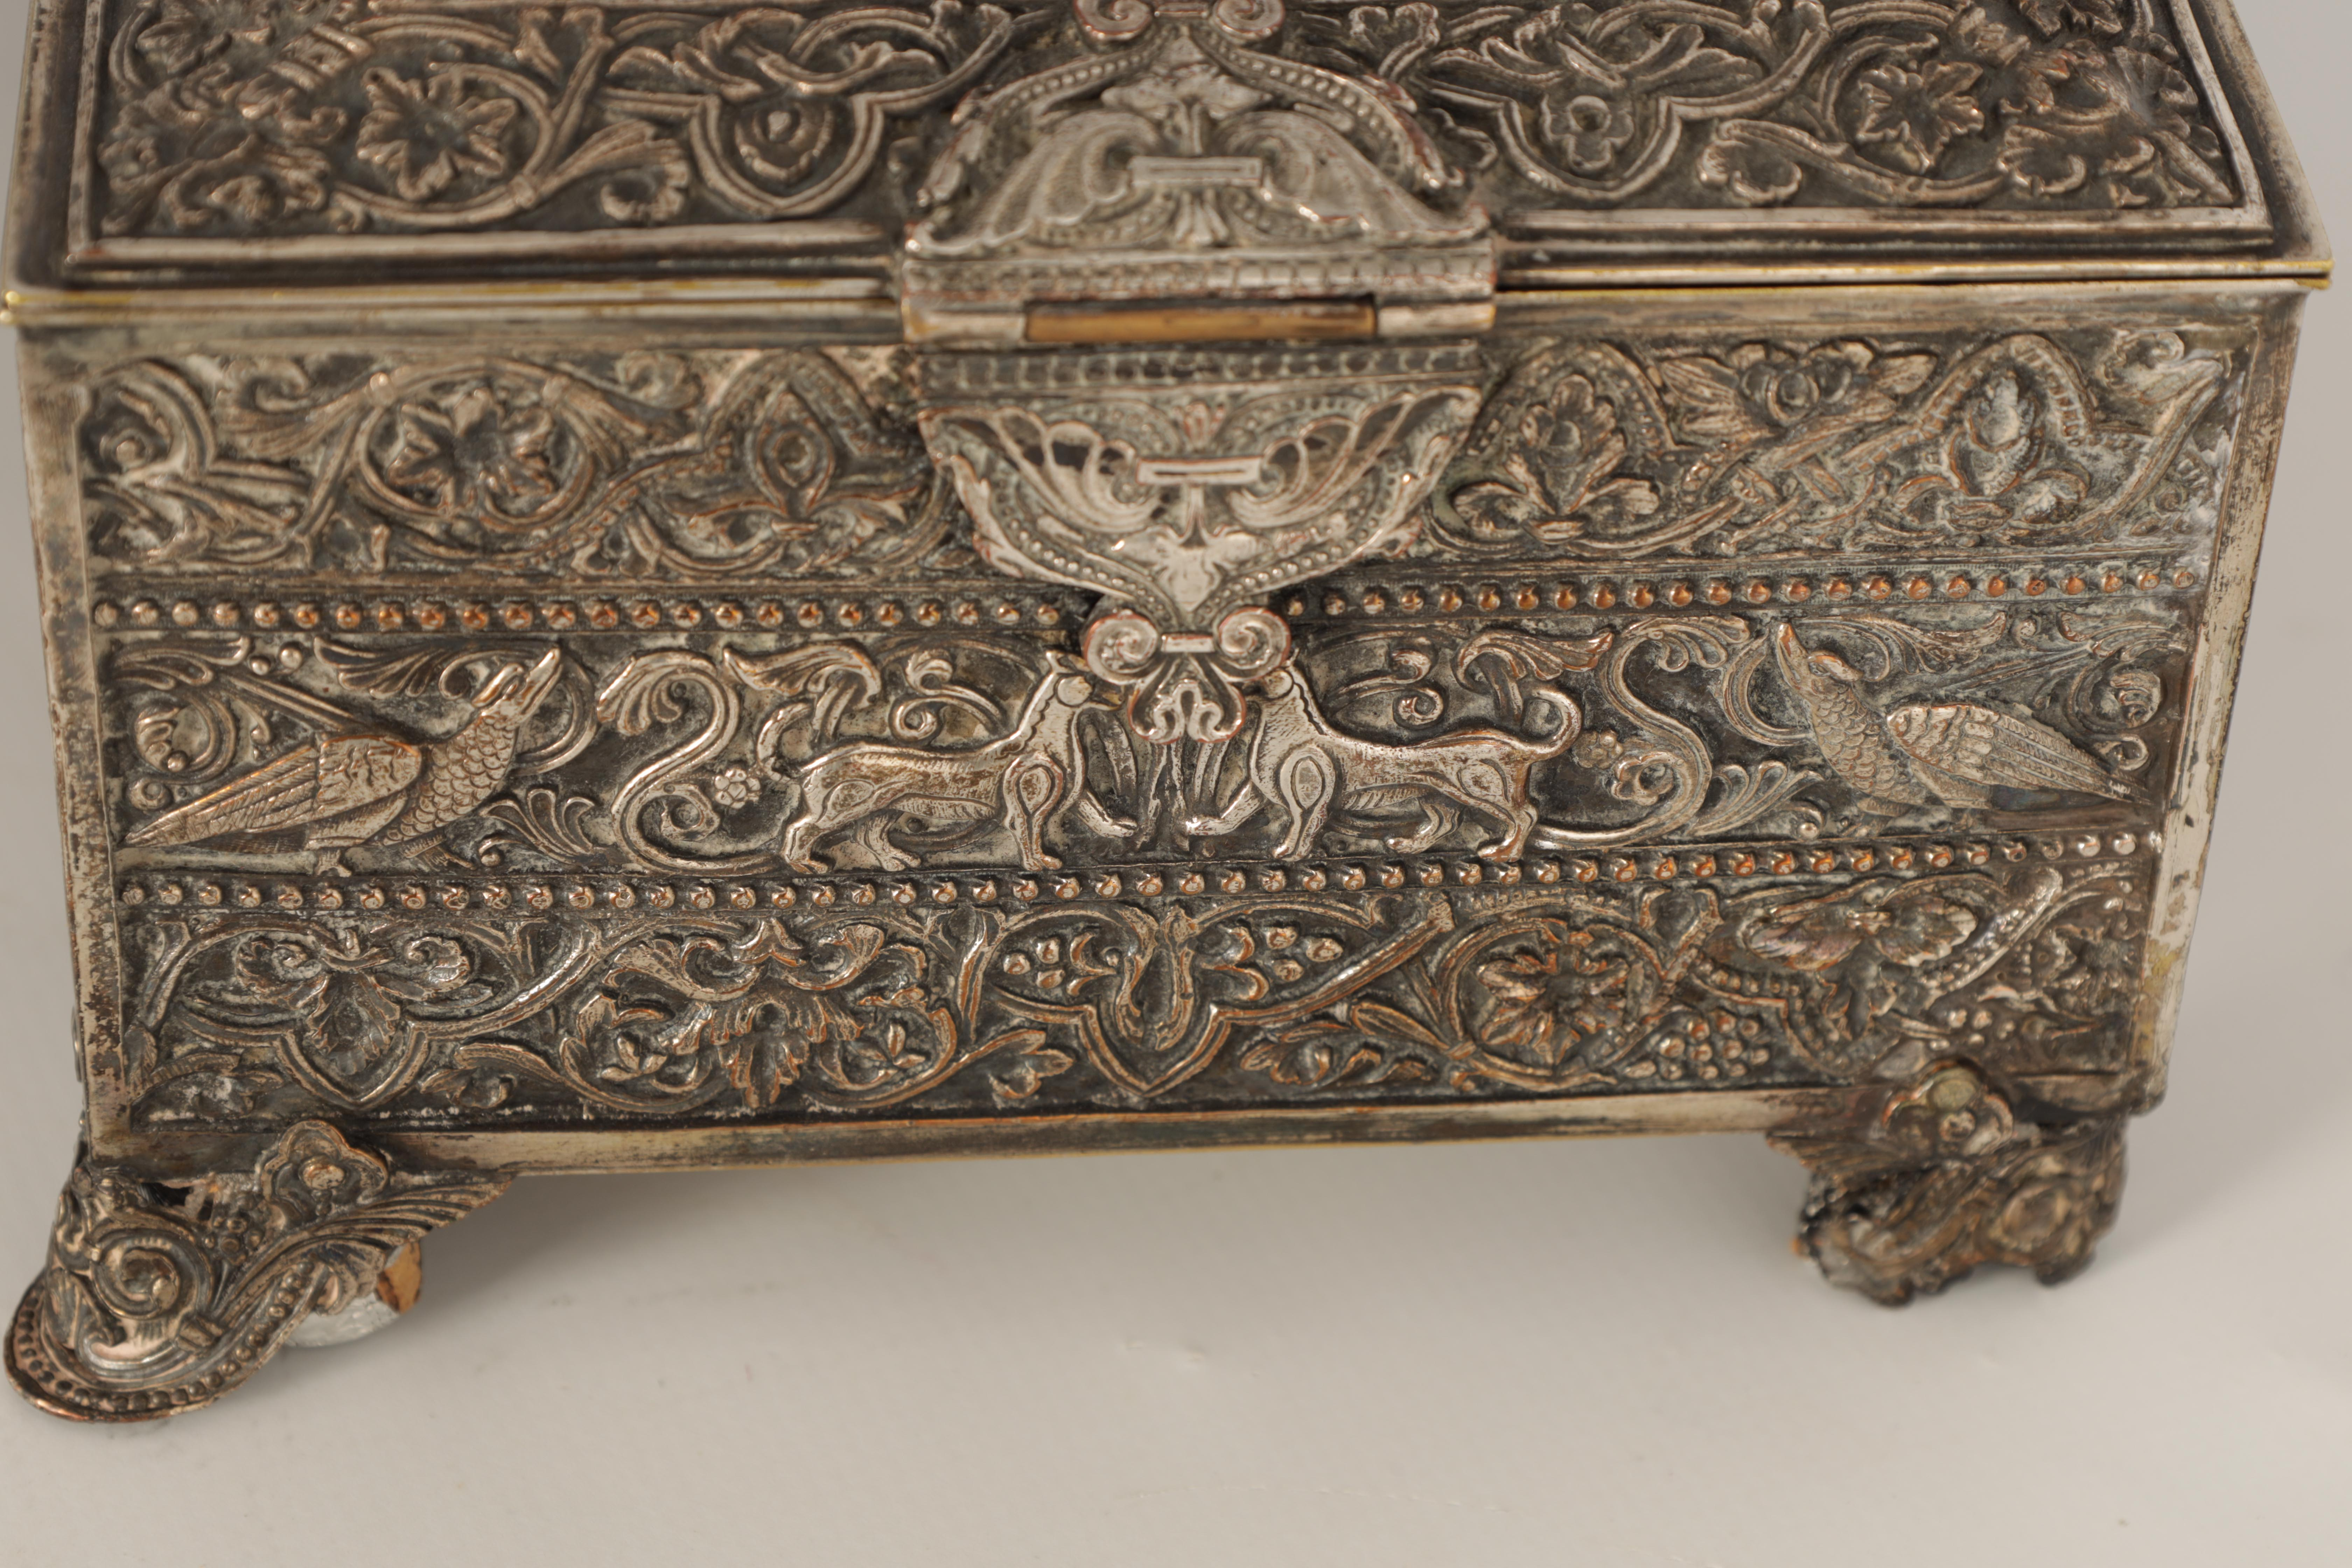 A 19TH CENTURY SILVERED BRONZE JEWELLERY CASKET the lid with intricate relief groups of birds, - Image 3 of 12